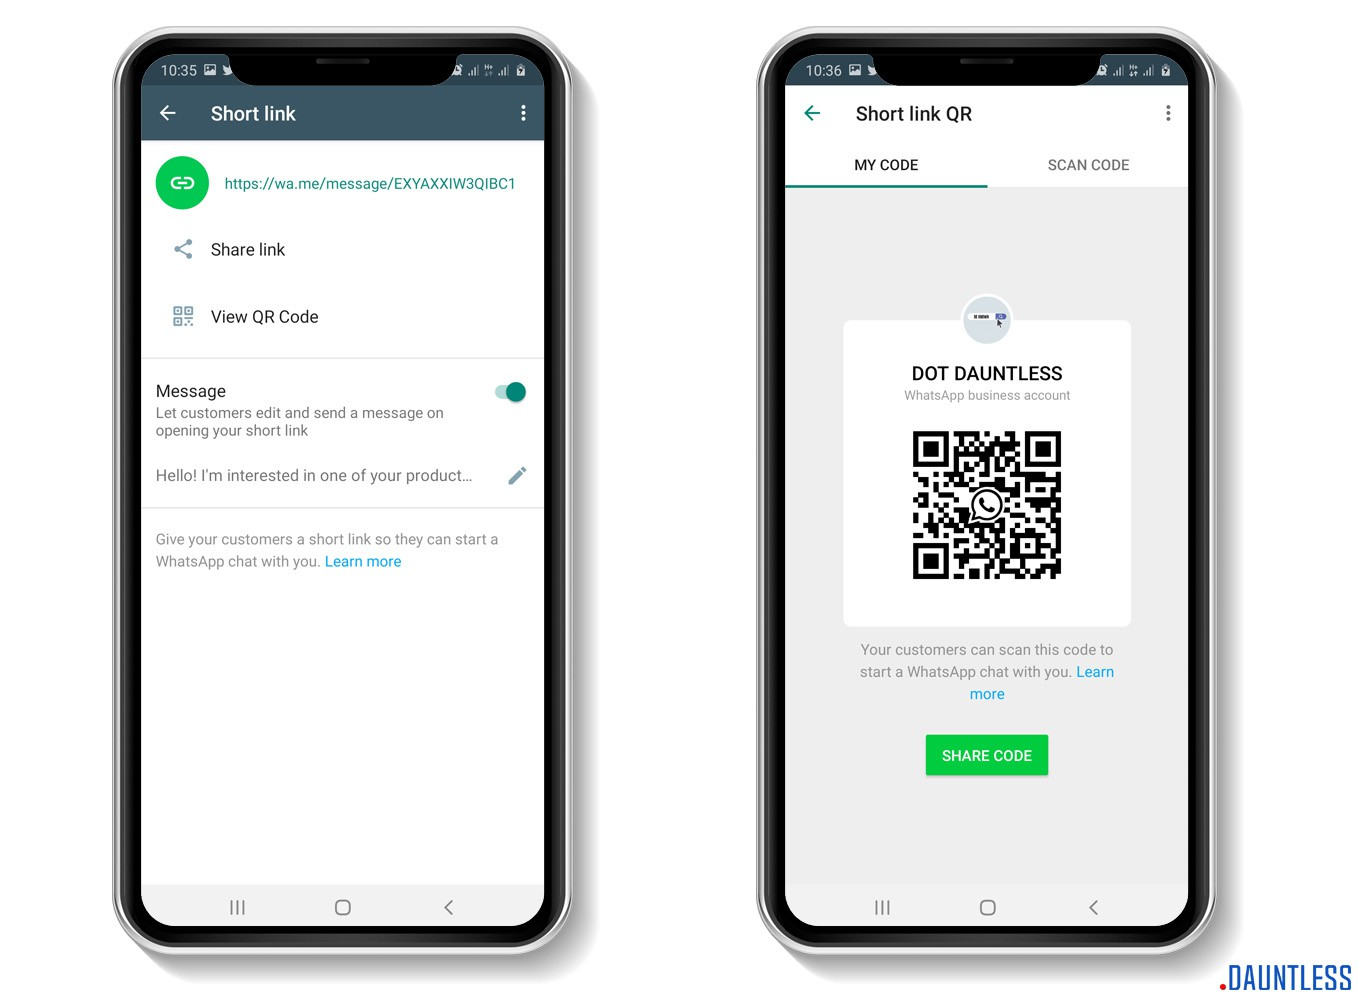 The share link and QR code feature or tool of the whatsapp business app